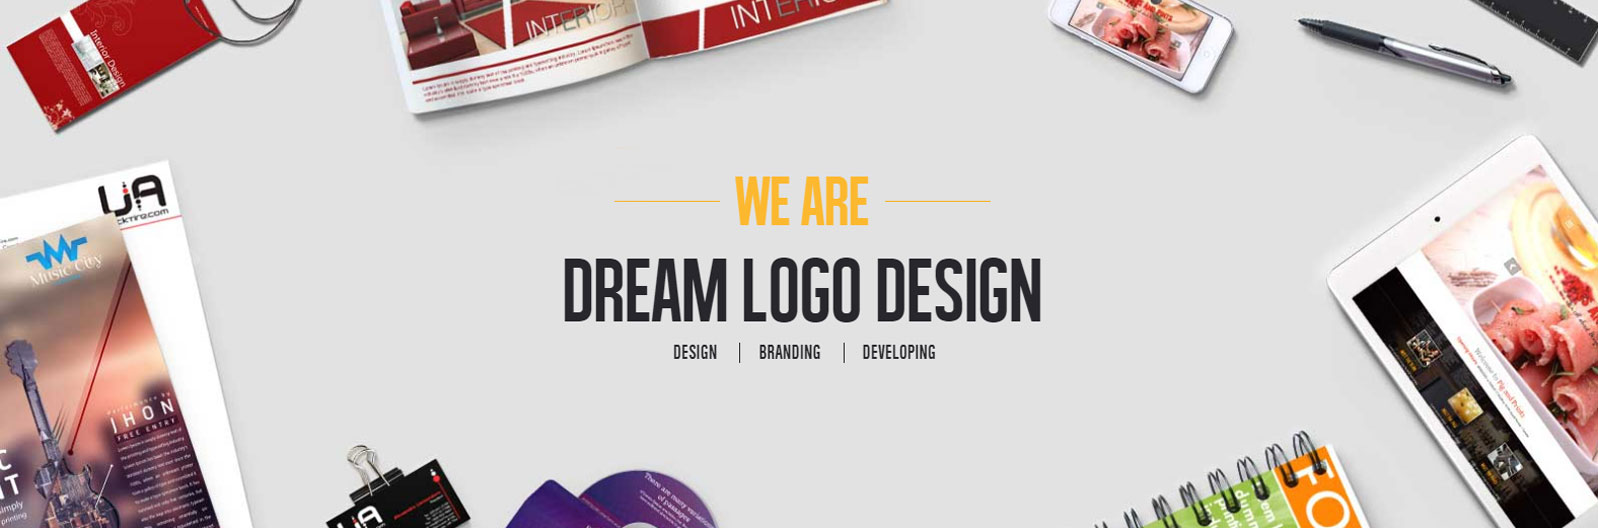 24/7 Health Club Logo Design  – DreamLogoDesign